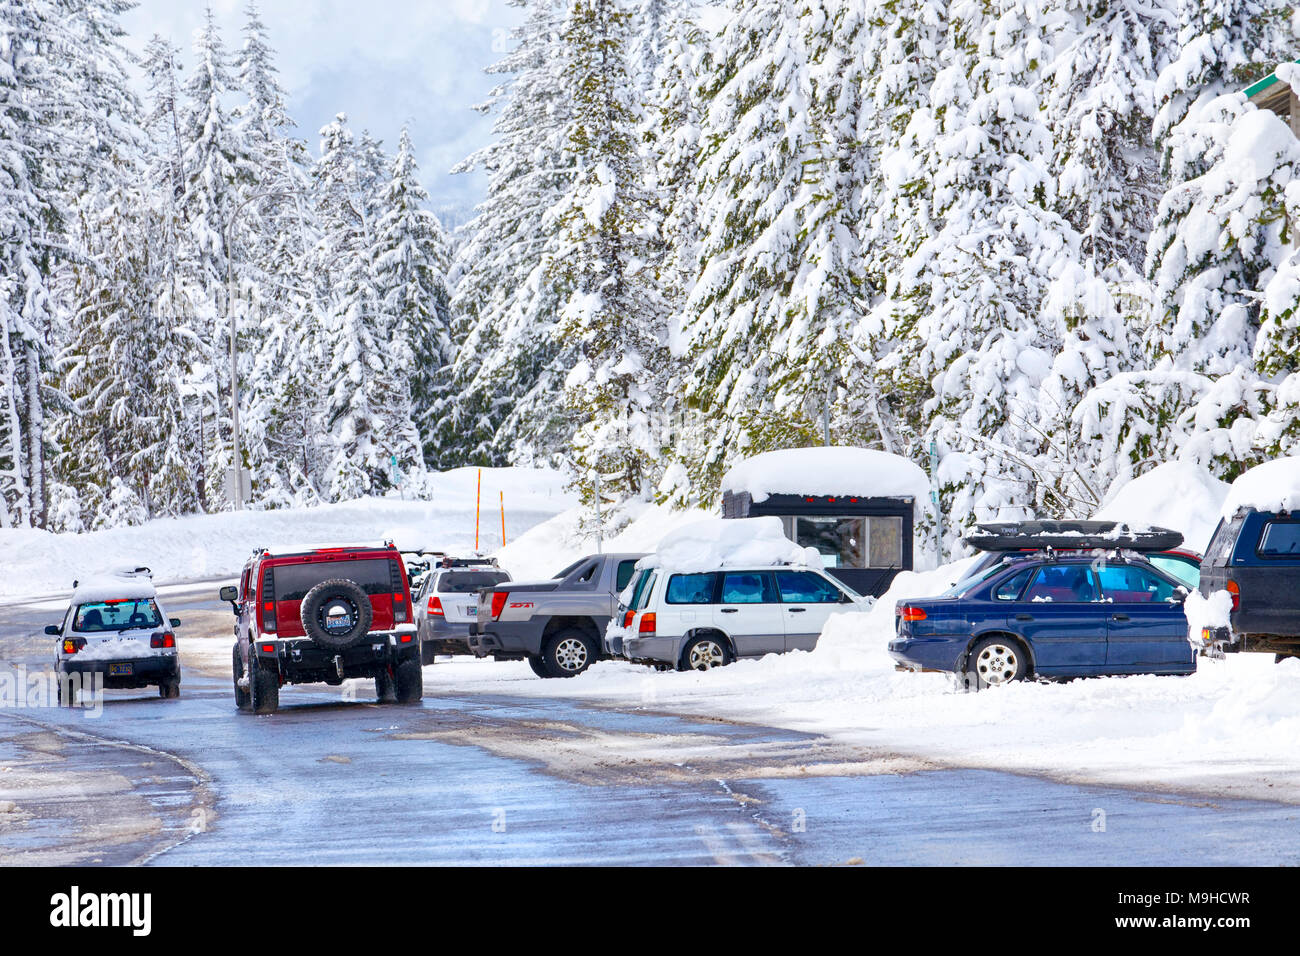 43,160.09728 winter snow-covered road, trees & driving & parked vehicle - Stock Image